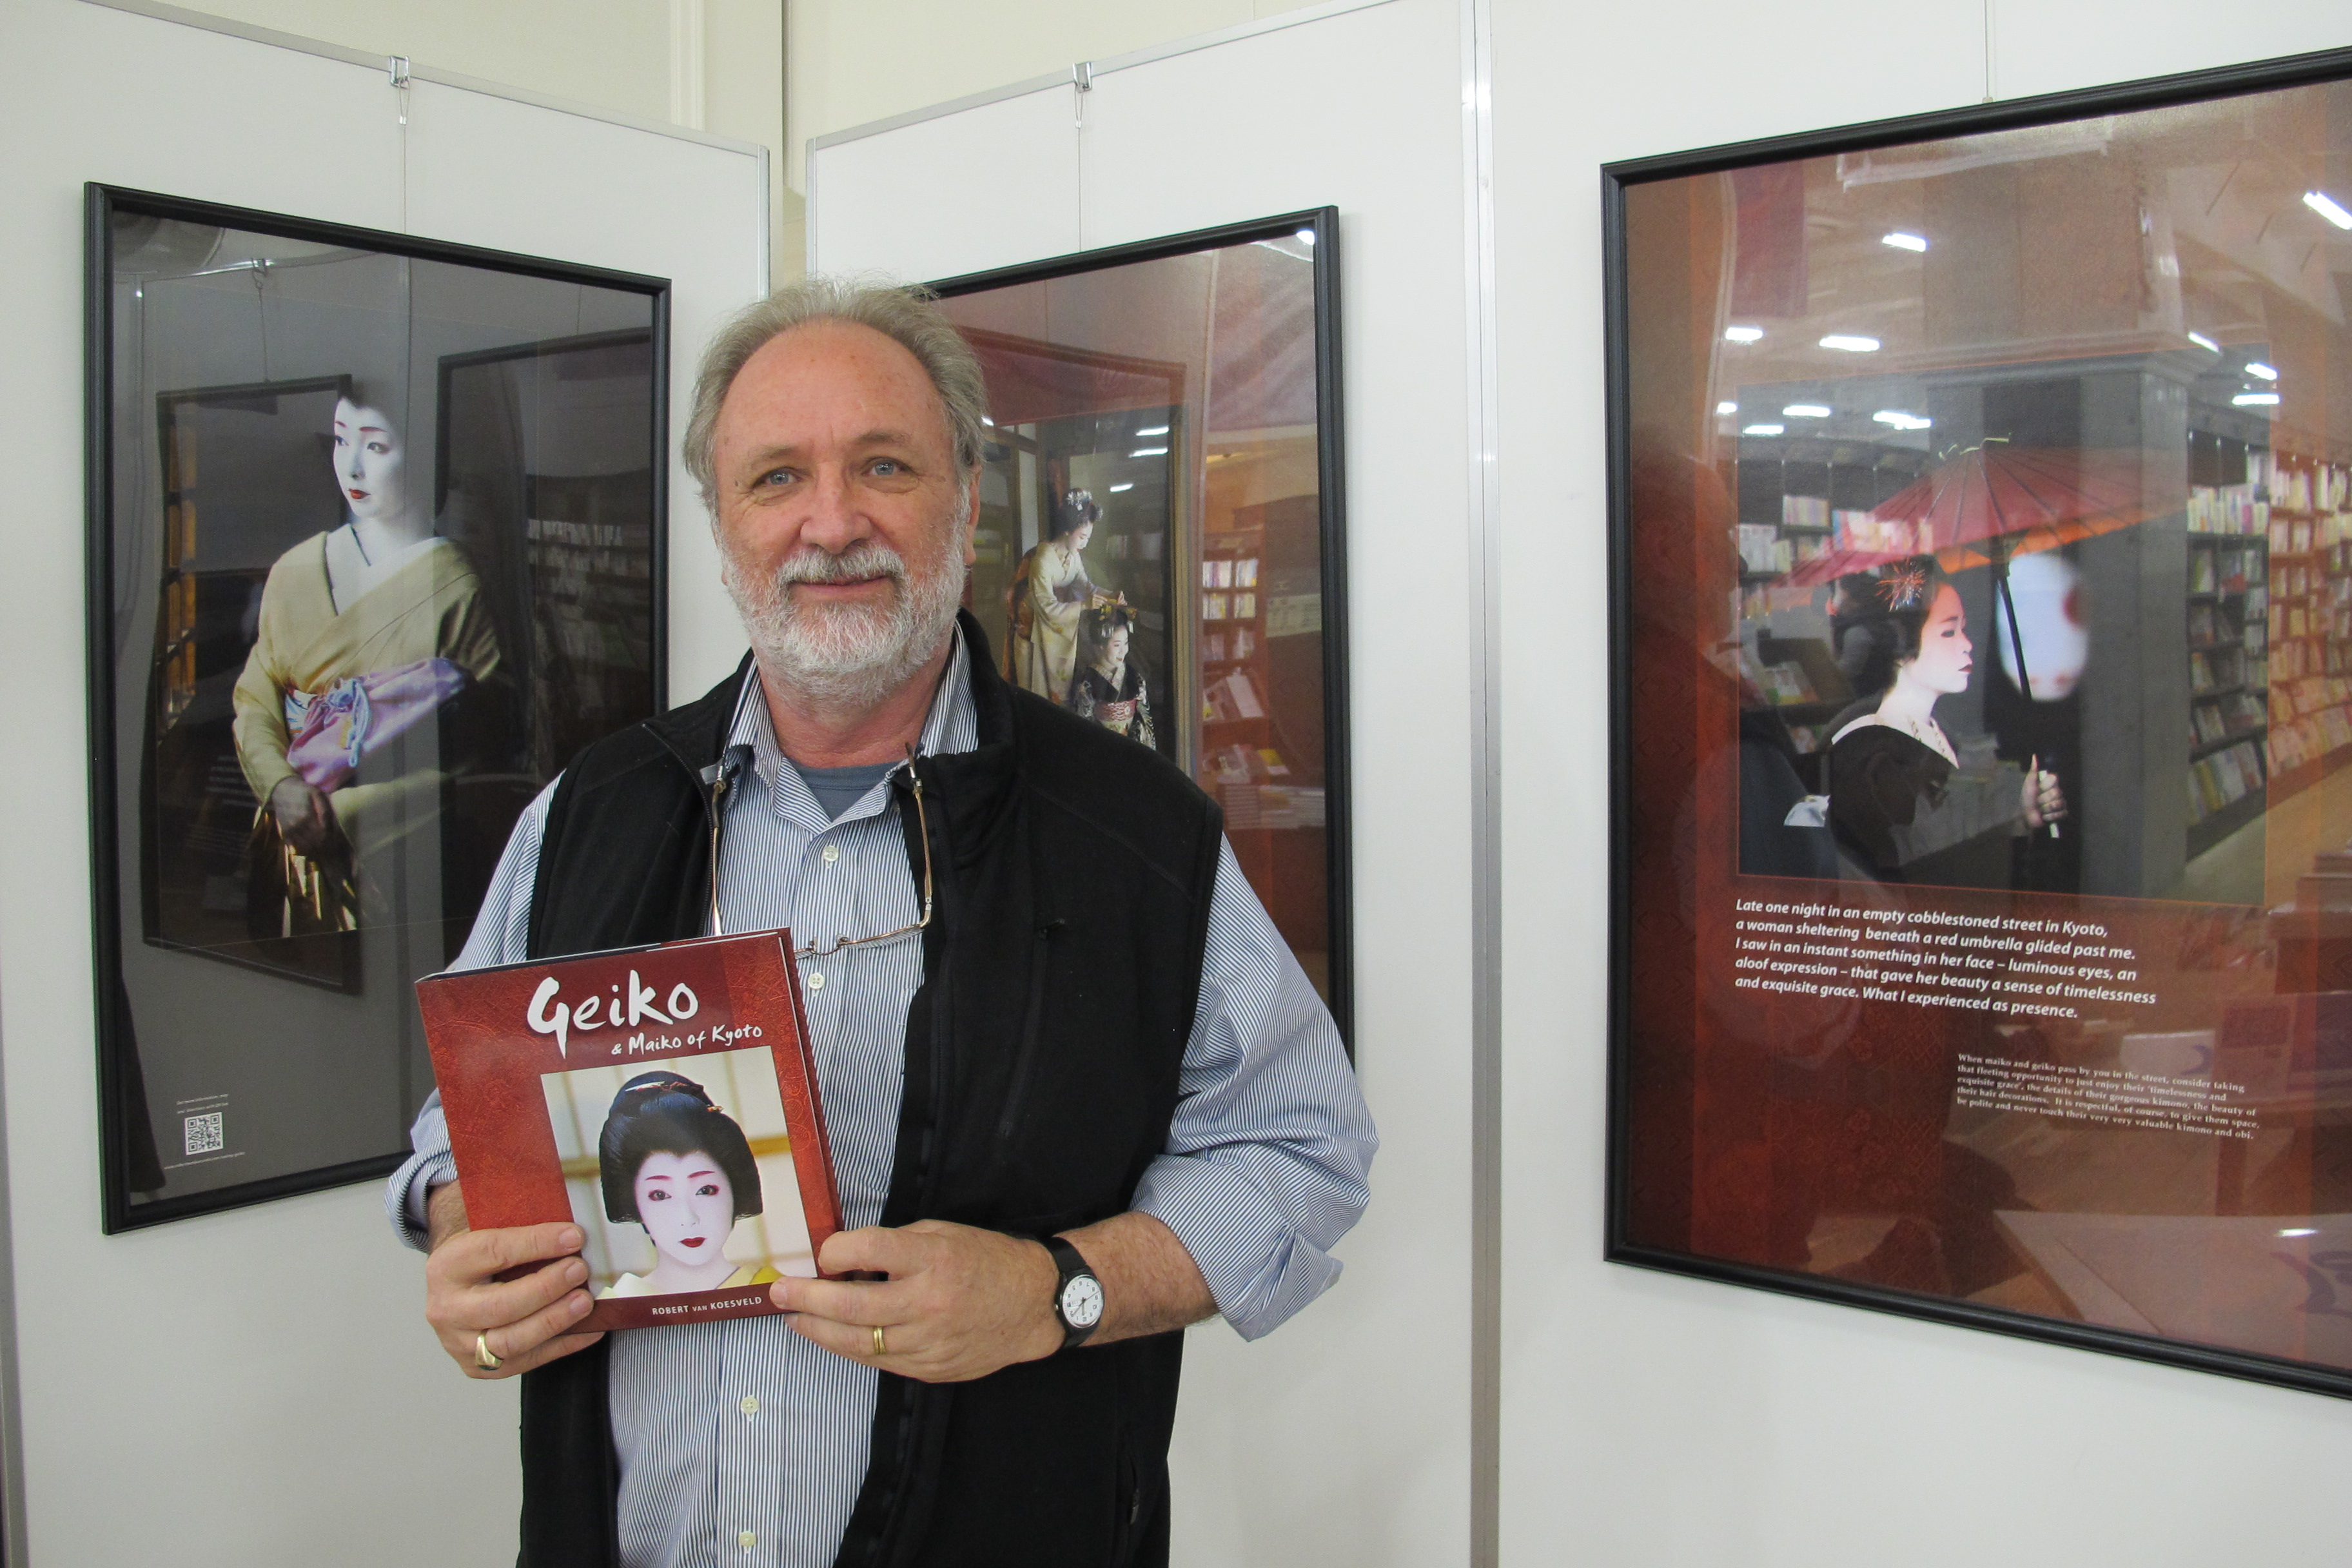 Robert and his book in Maruzen bookstore.